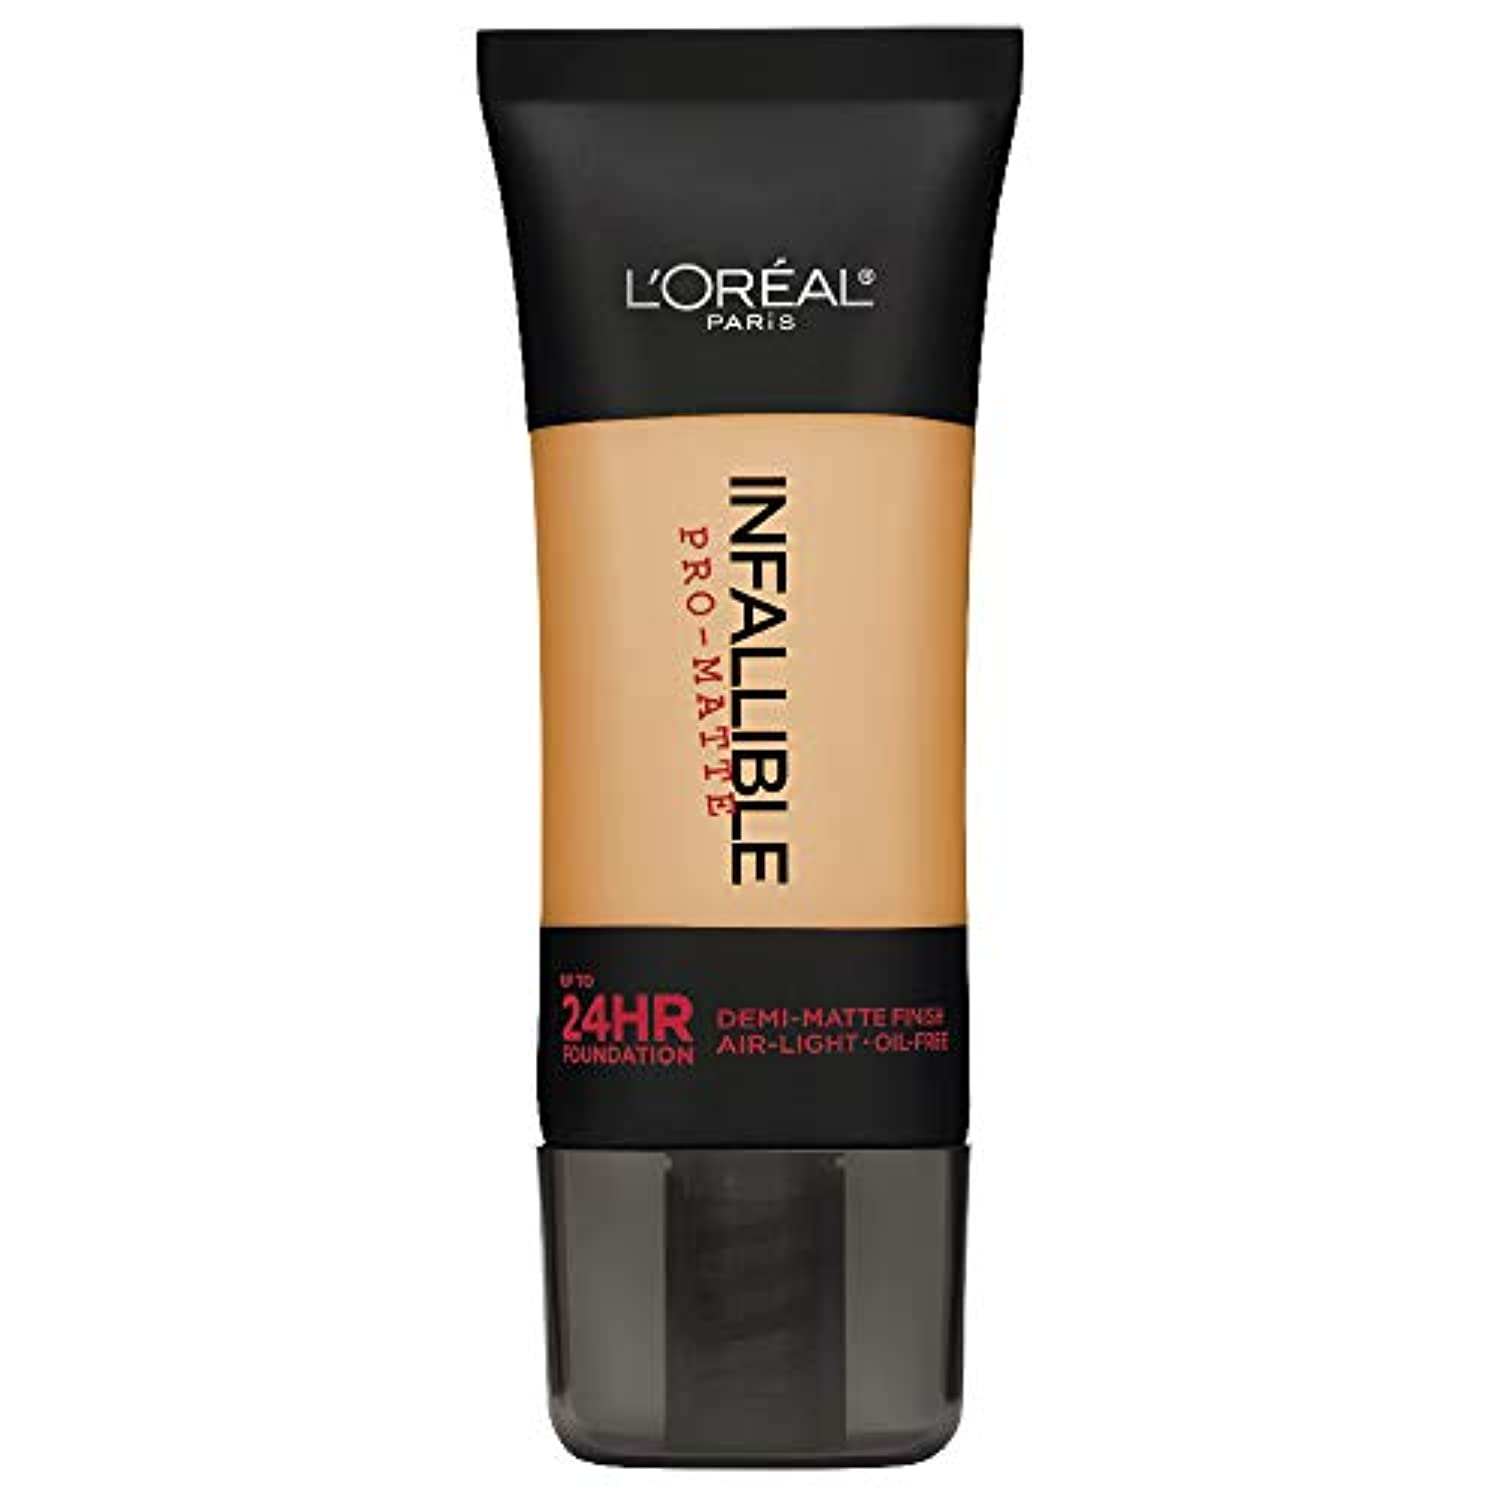 L'Oreal Paris Infallible Pro-Matte Foundation Makeup, 105 Natural Beige, 1 fl. oz[並行輸入品]